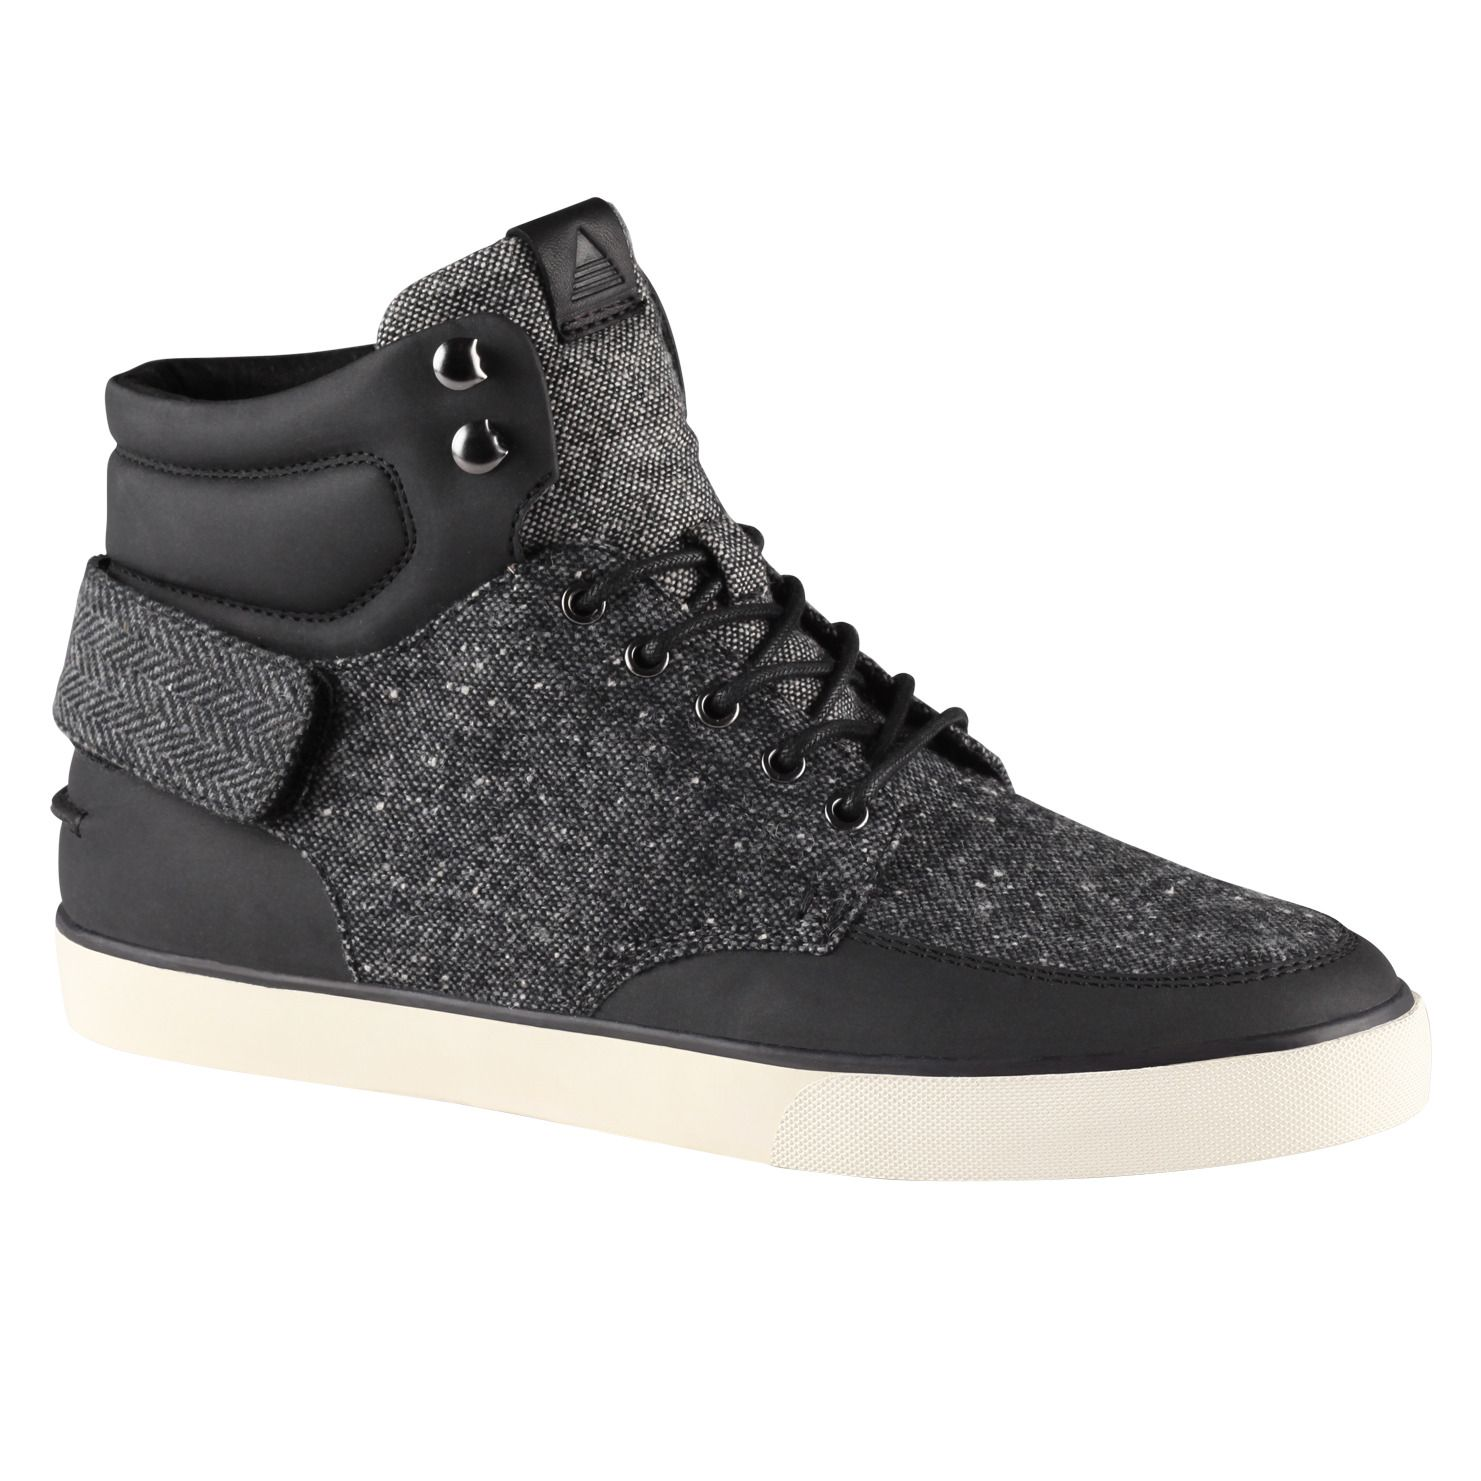 6cef166ac7e0 SMITLEY - men s sneakers shoes for sale at ALDO Shoes.